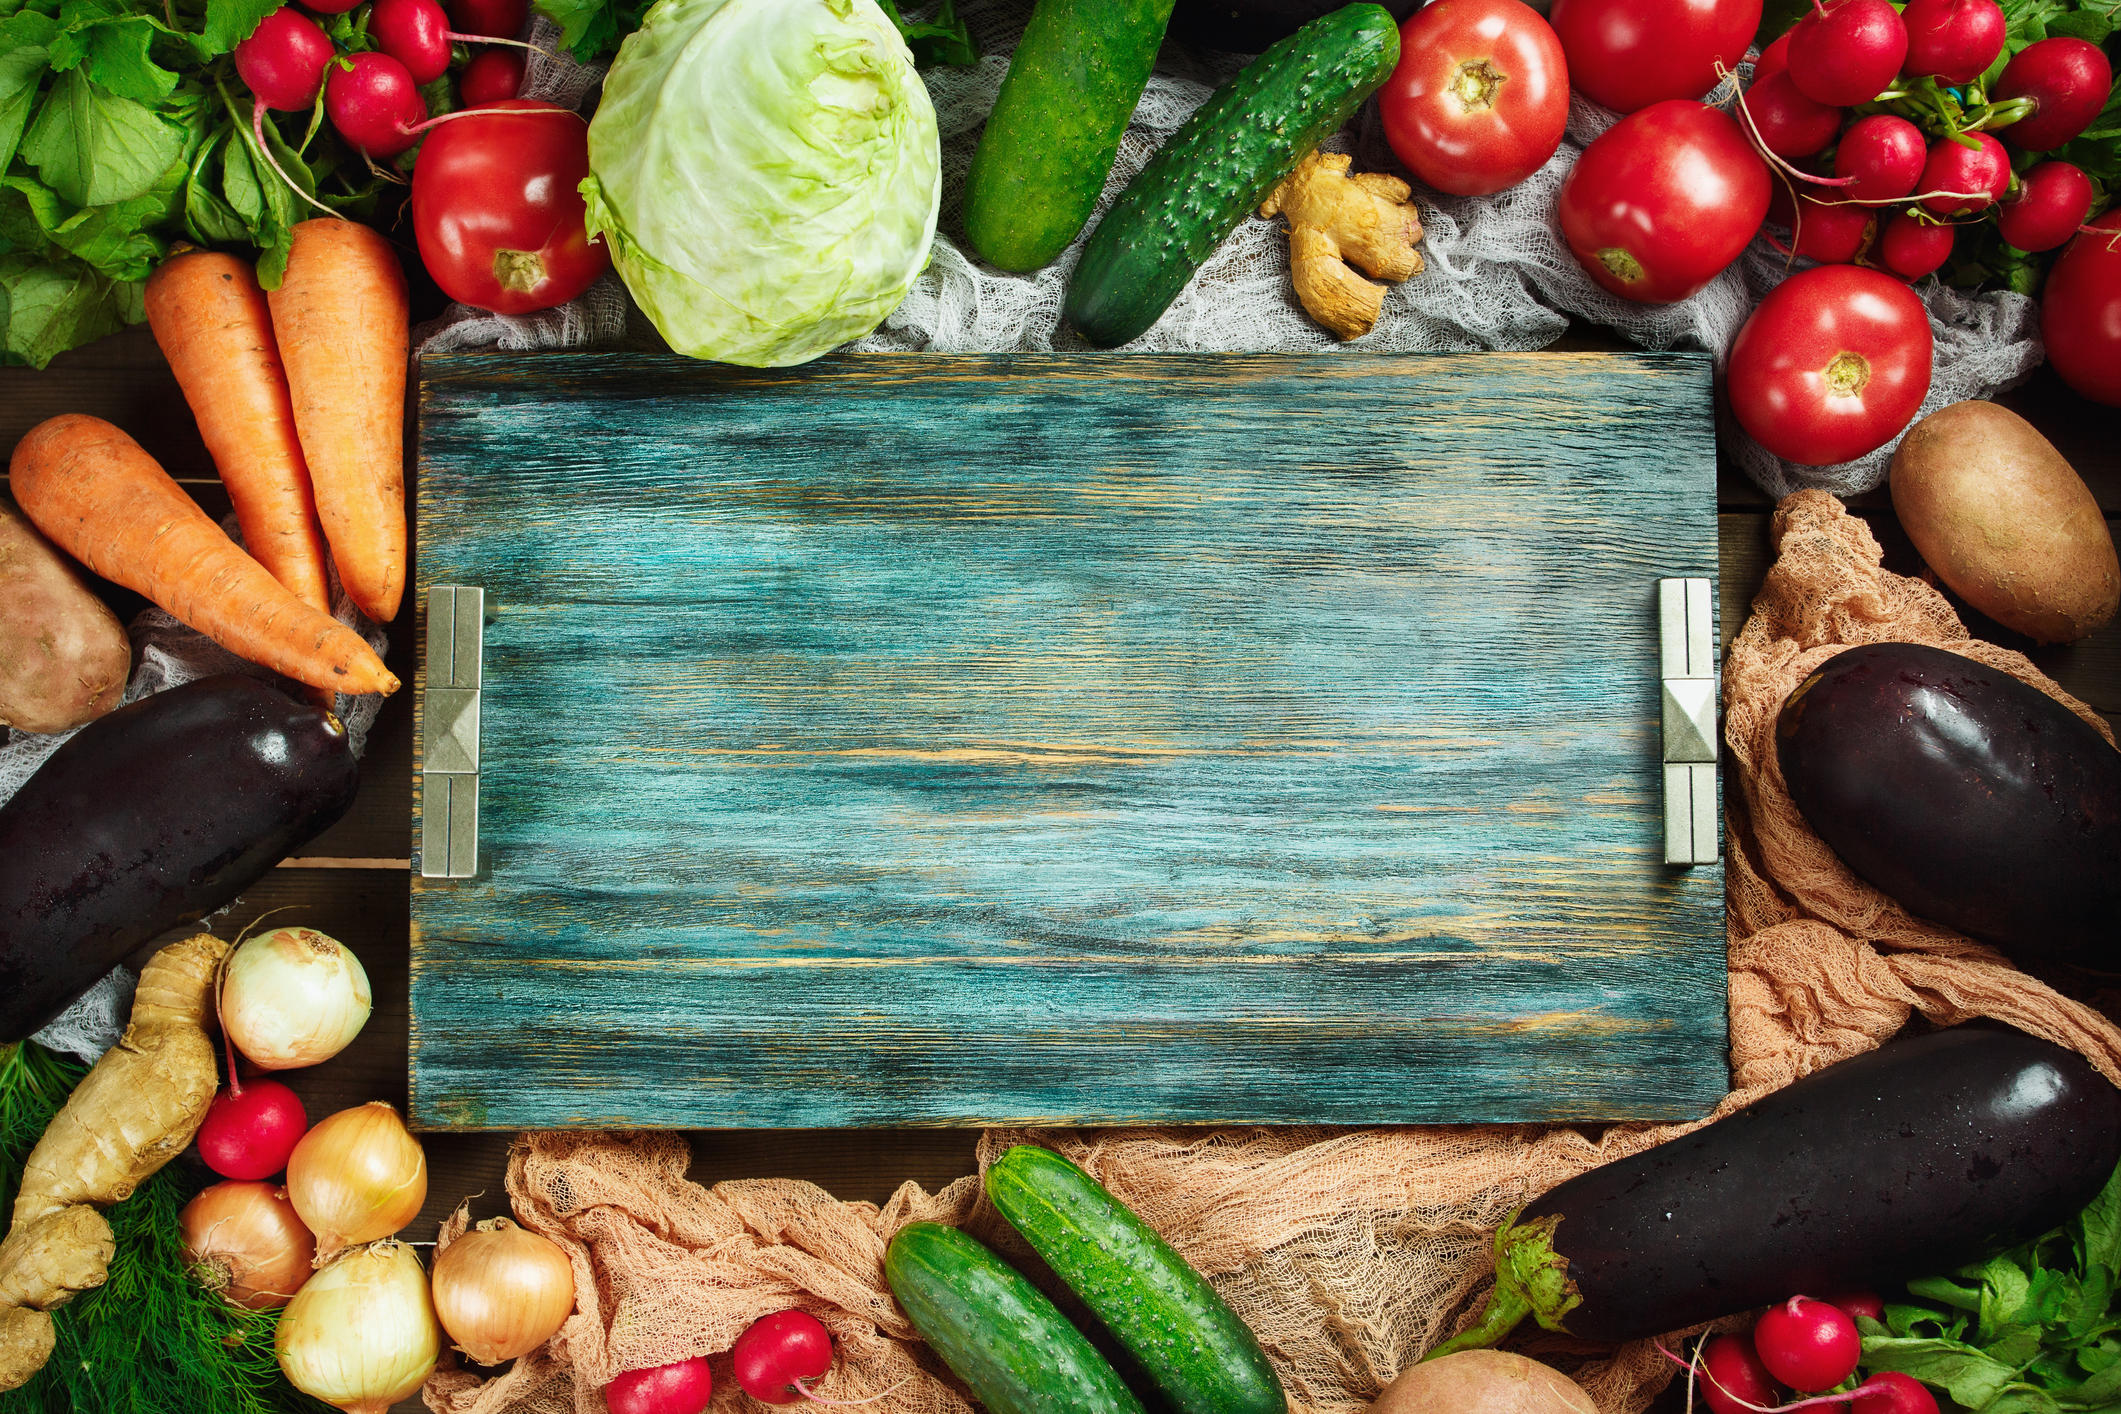 Border composition  made with fresh vegetables on wooden rustic table with blue vintage tray. Top view, space for text. Eggplants, cabbage, carrot, tomato, onion and other.